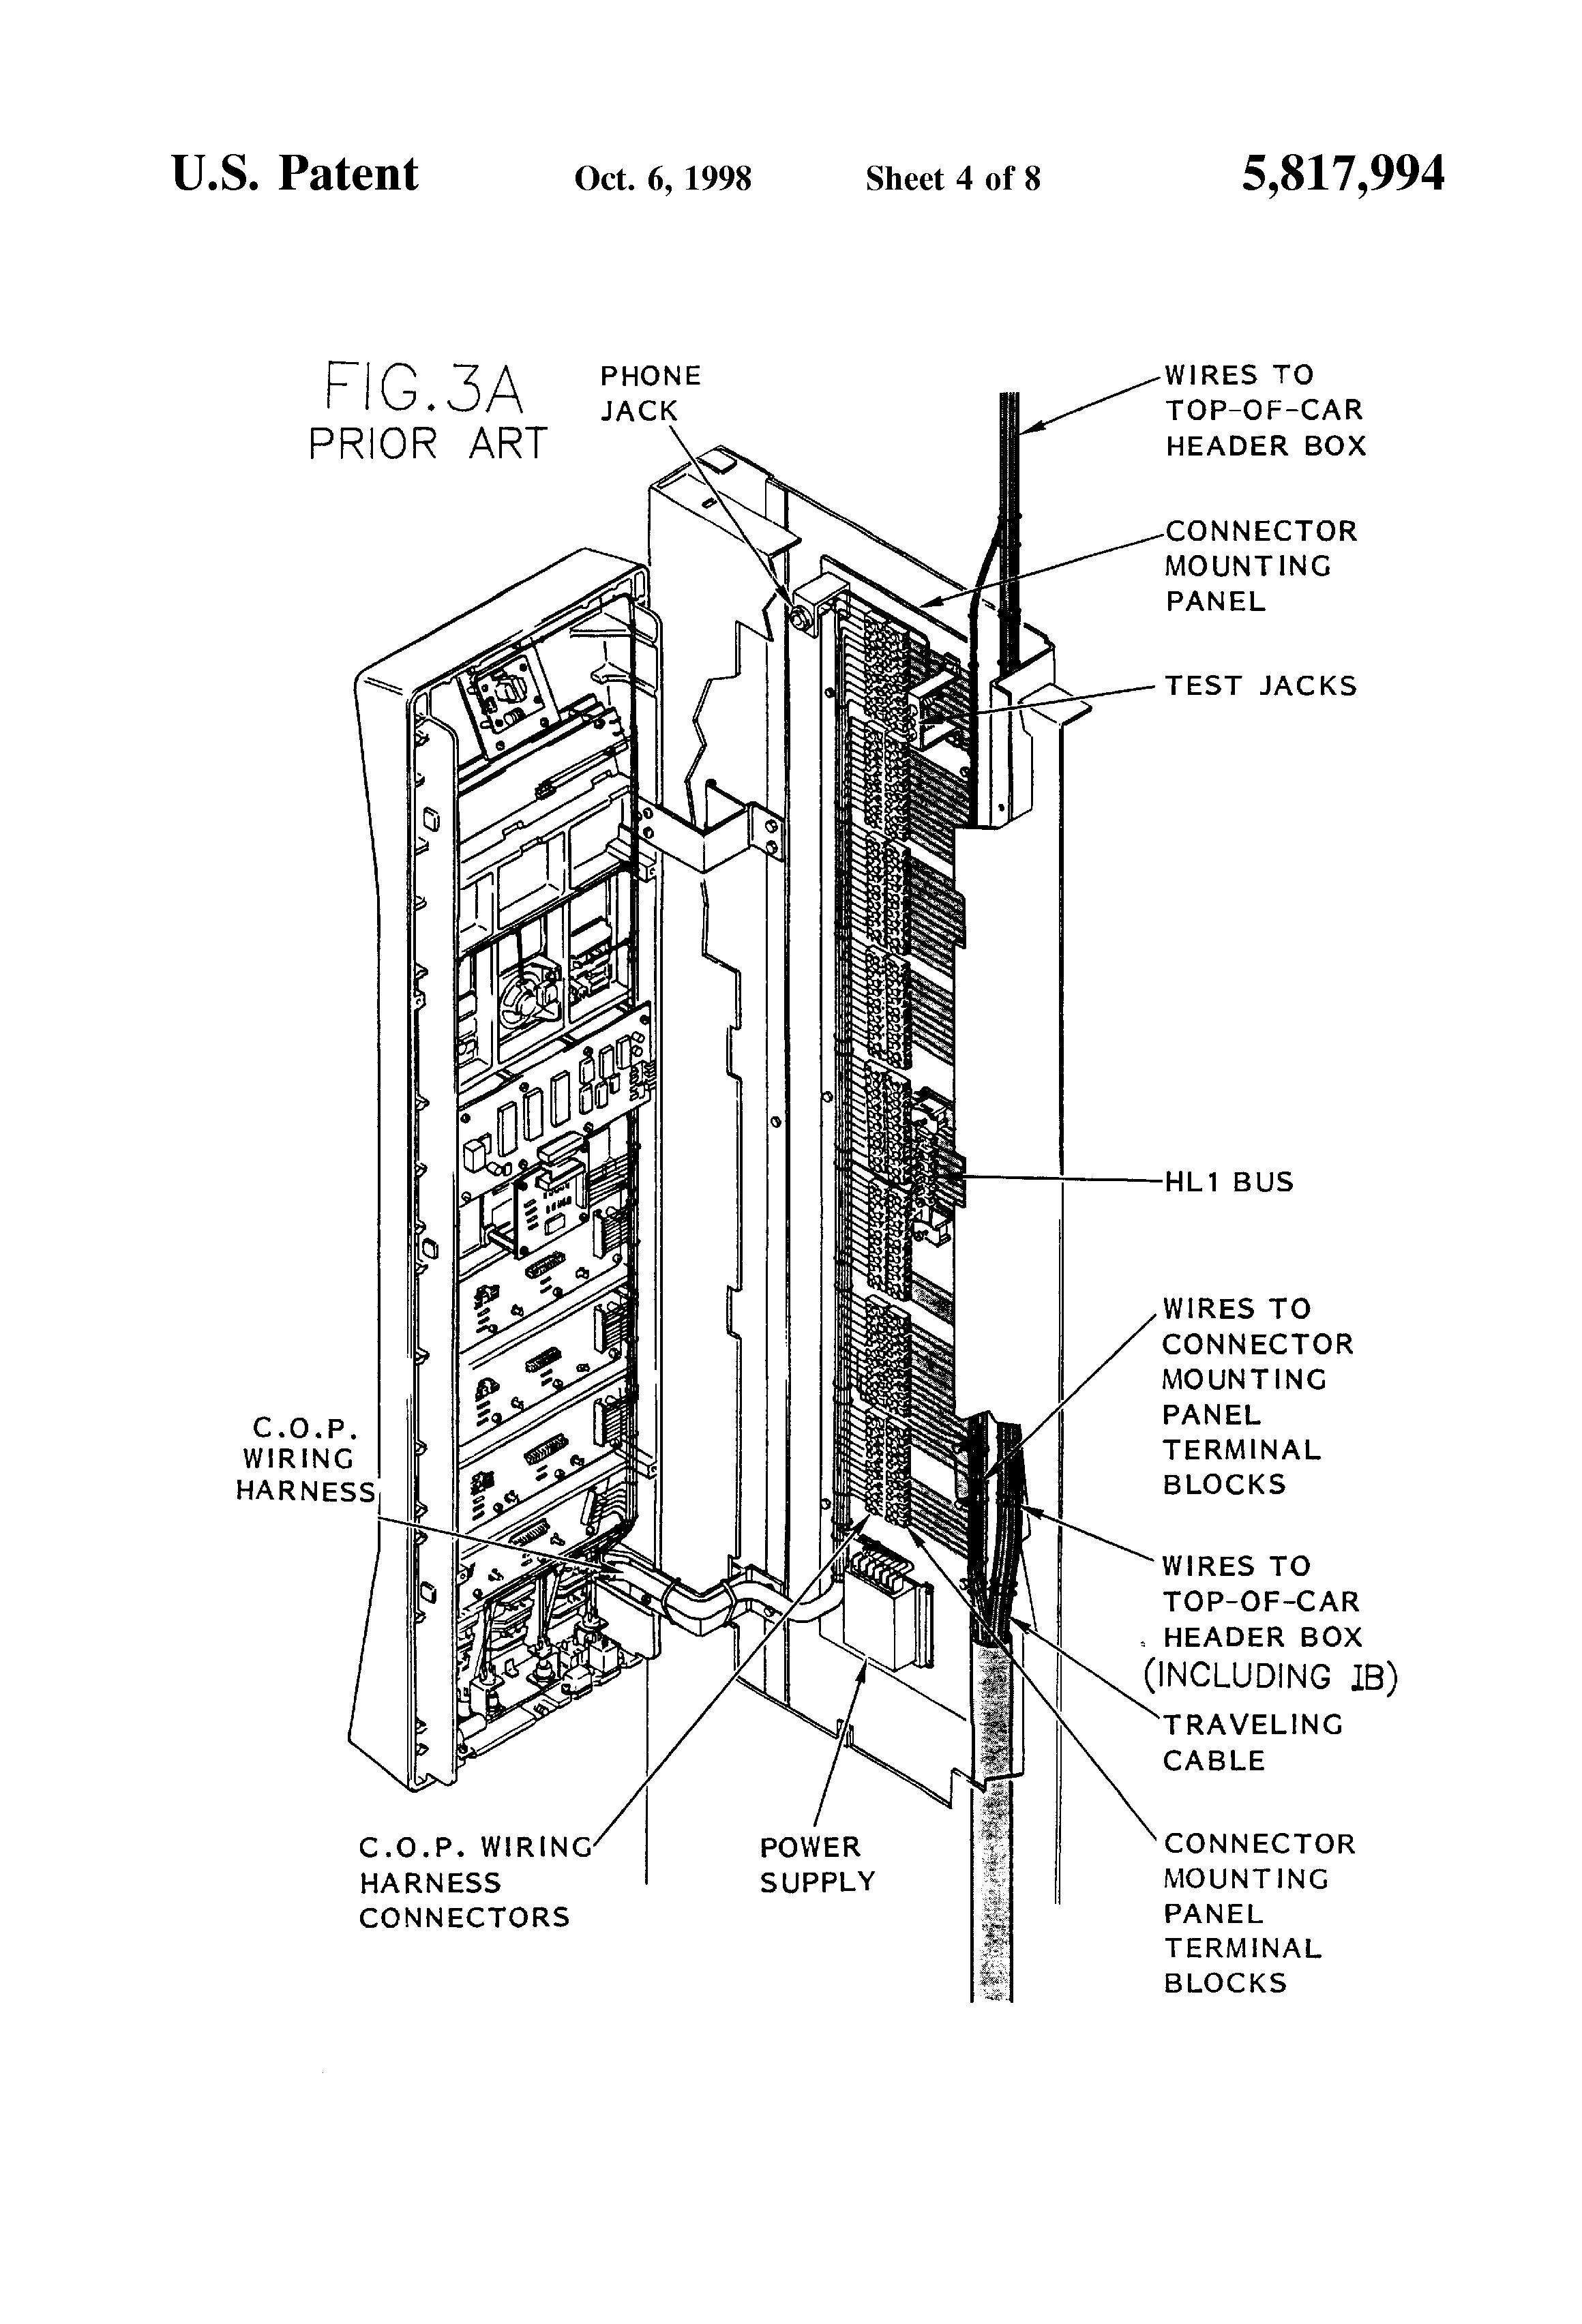 Home Elevator Wiring Diagram Great Design Of Otis Golf Cart Patent Us5817994 Remote Fail Safe Control For Schematic